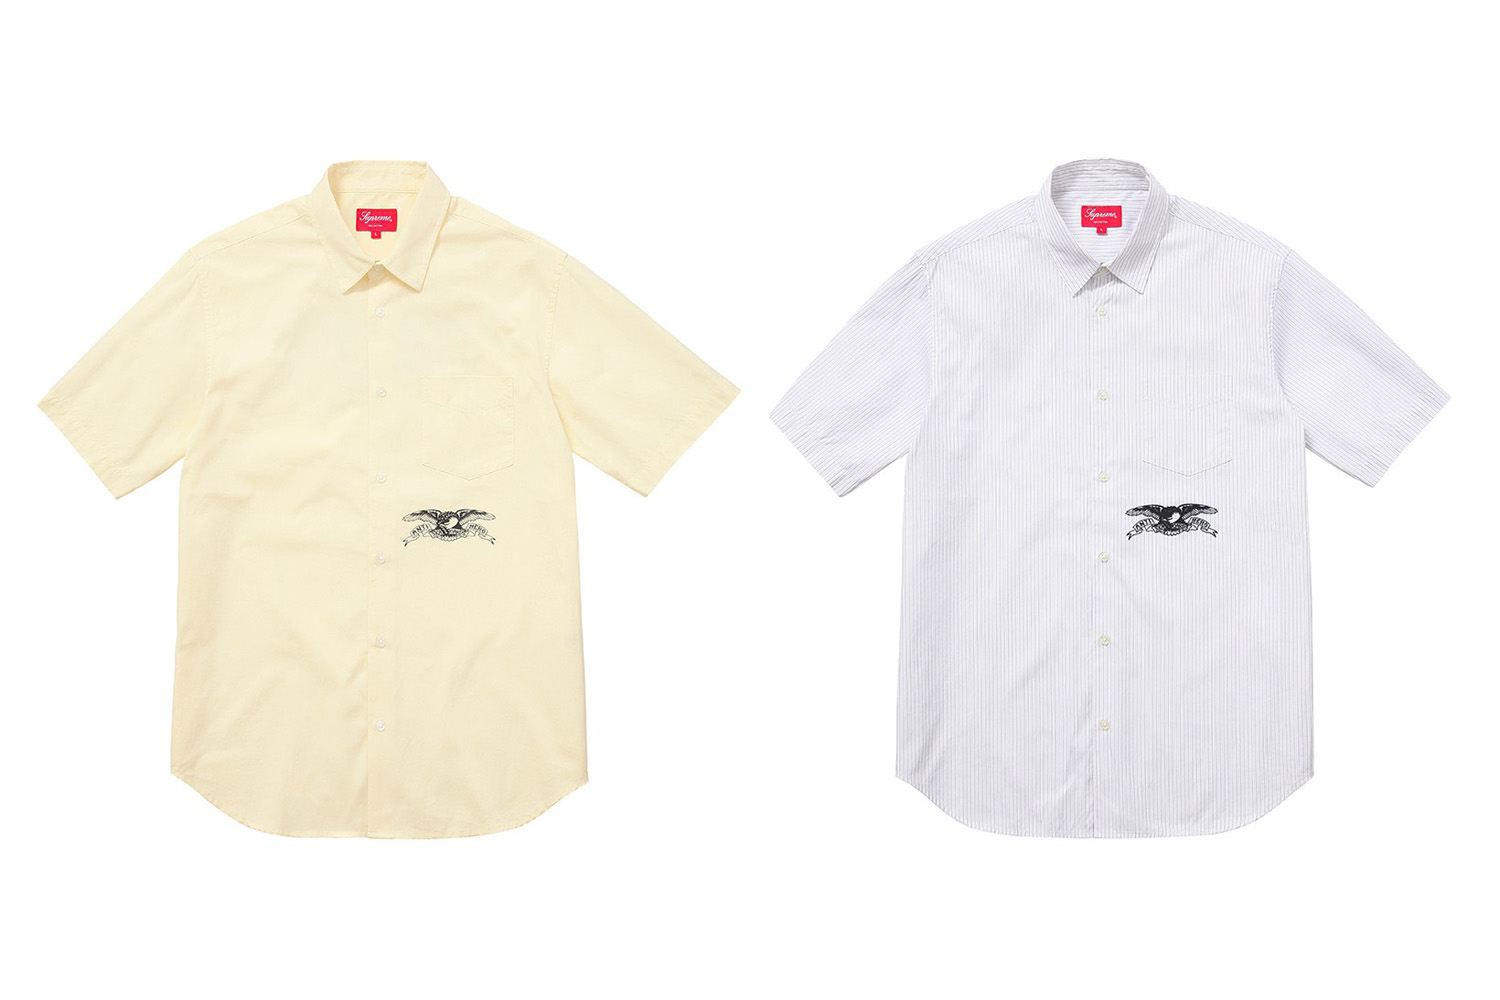 supreme-x-antihero-2016-summer-collection-09